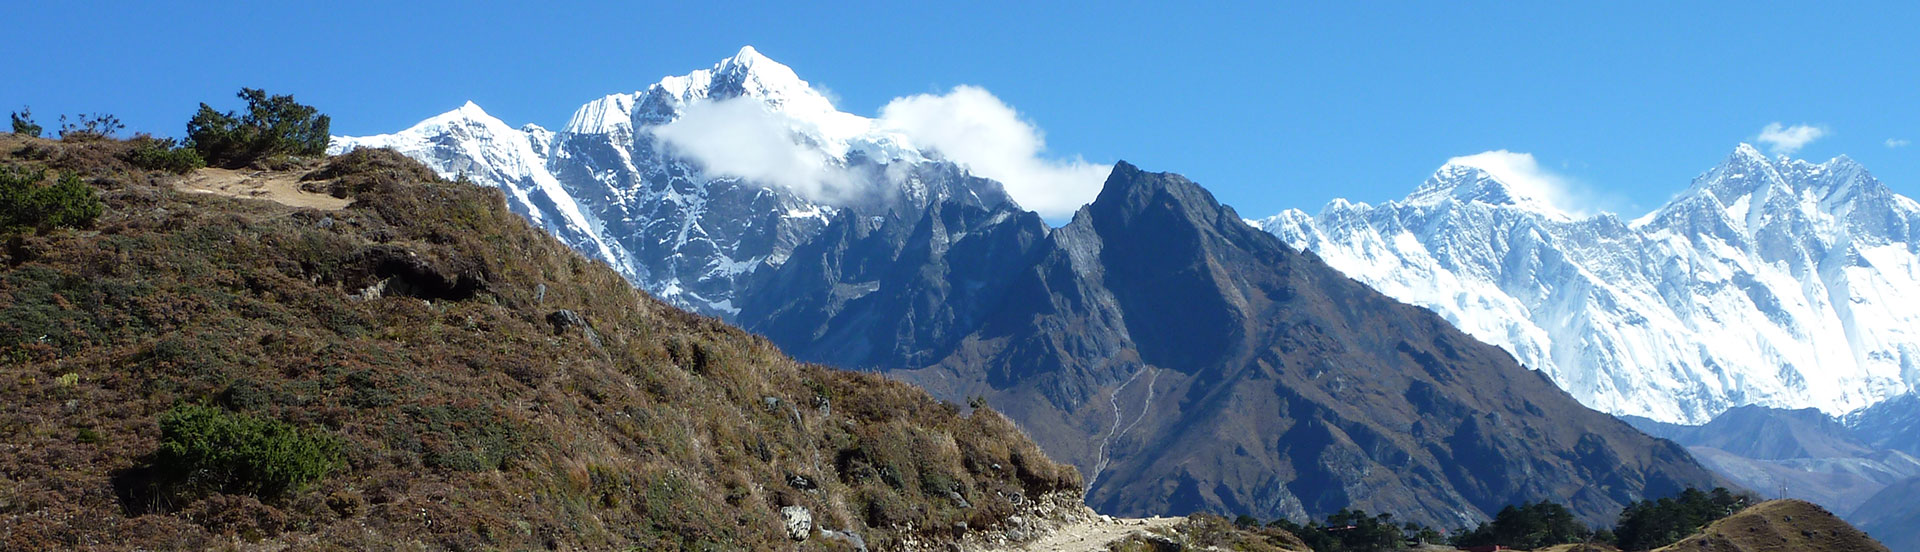 Peekye – Lower Everest Trek